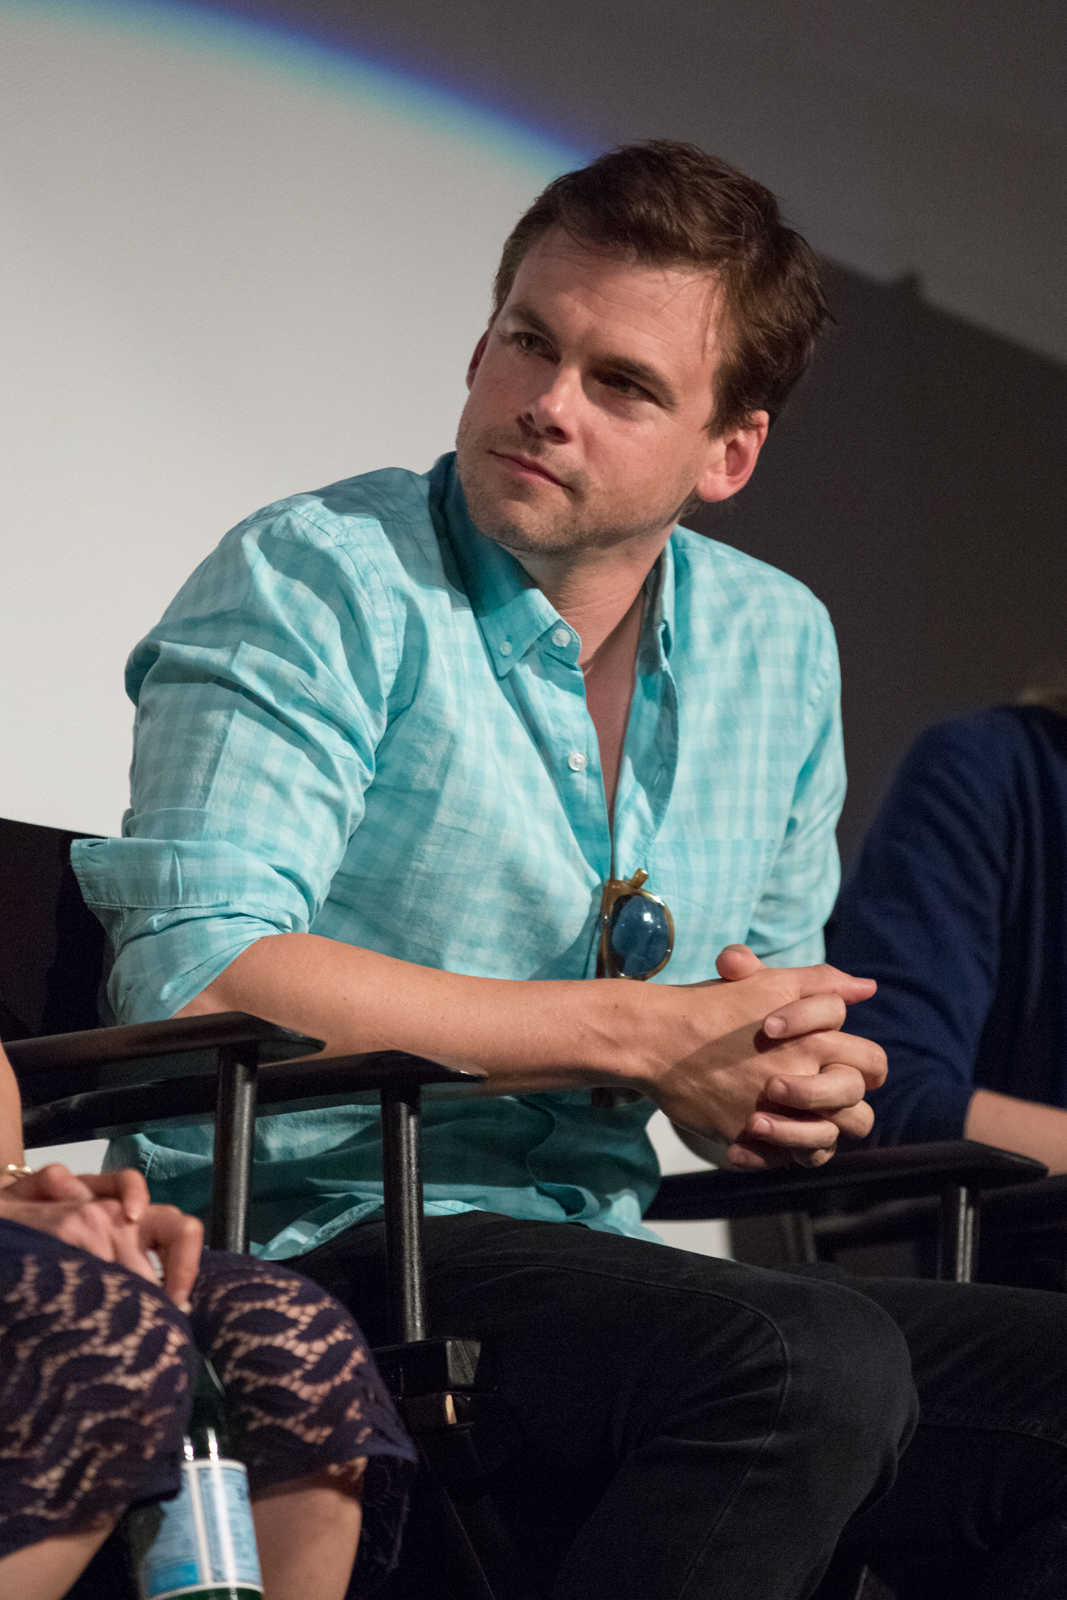 The 40-year old son of father (?) and mother(?) Tommy Dewey in 2019 photo. Tommy Dewey earned a  million dollar salary - leaving the net worth at 1 million in 2019